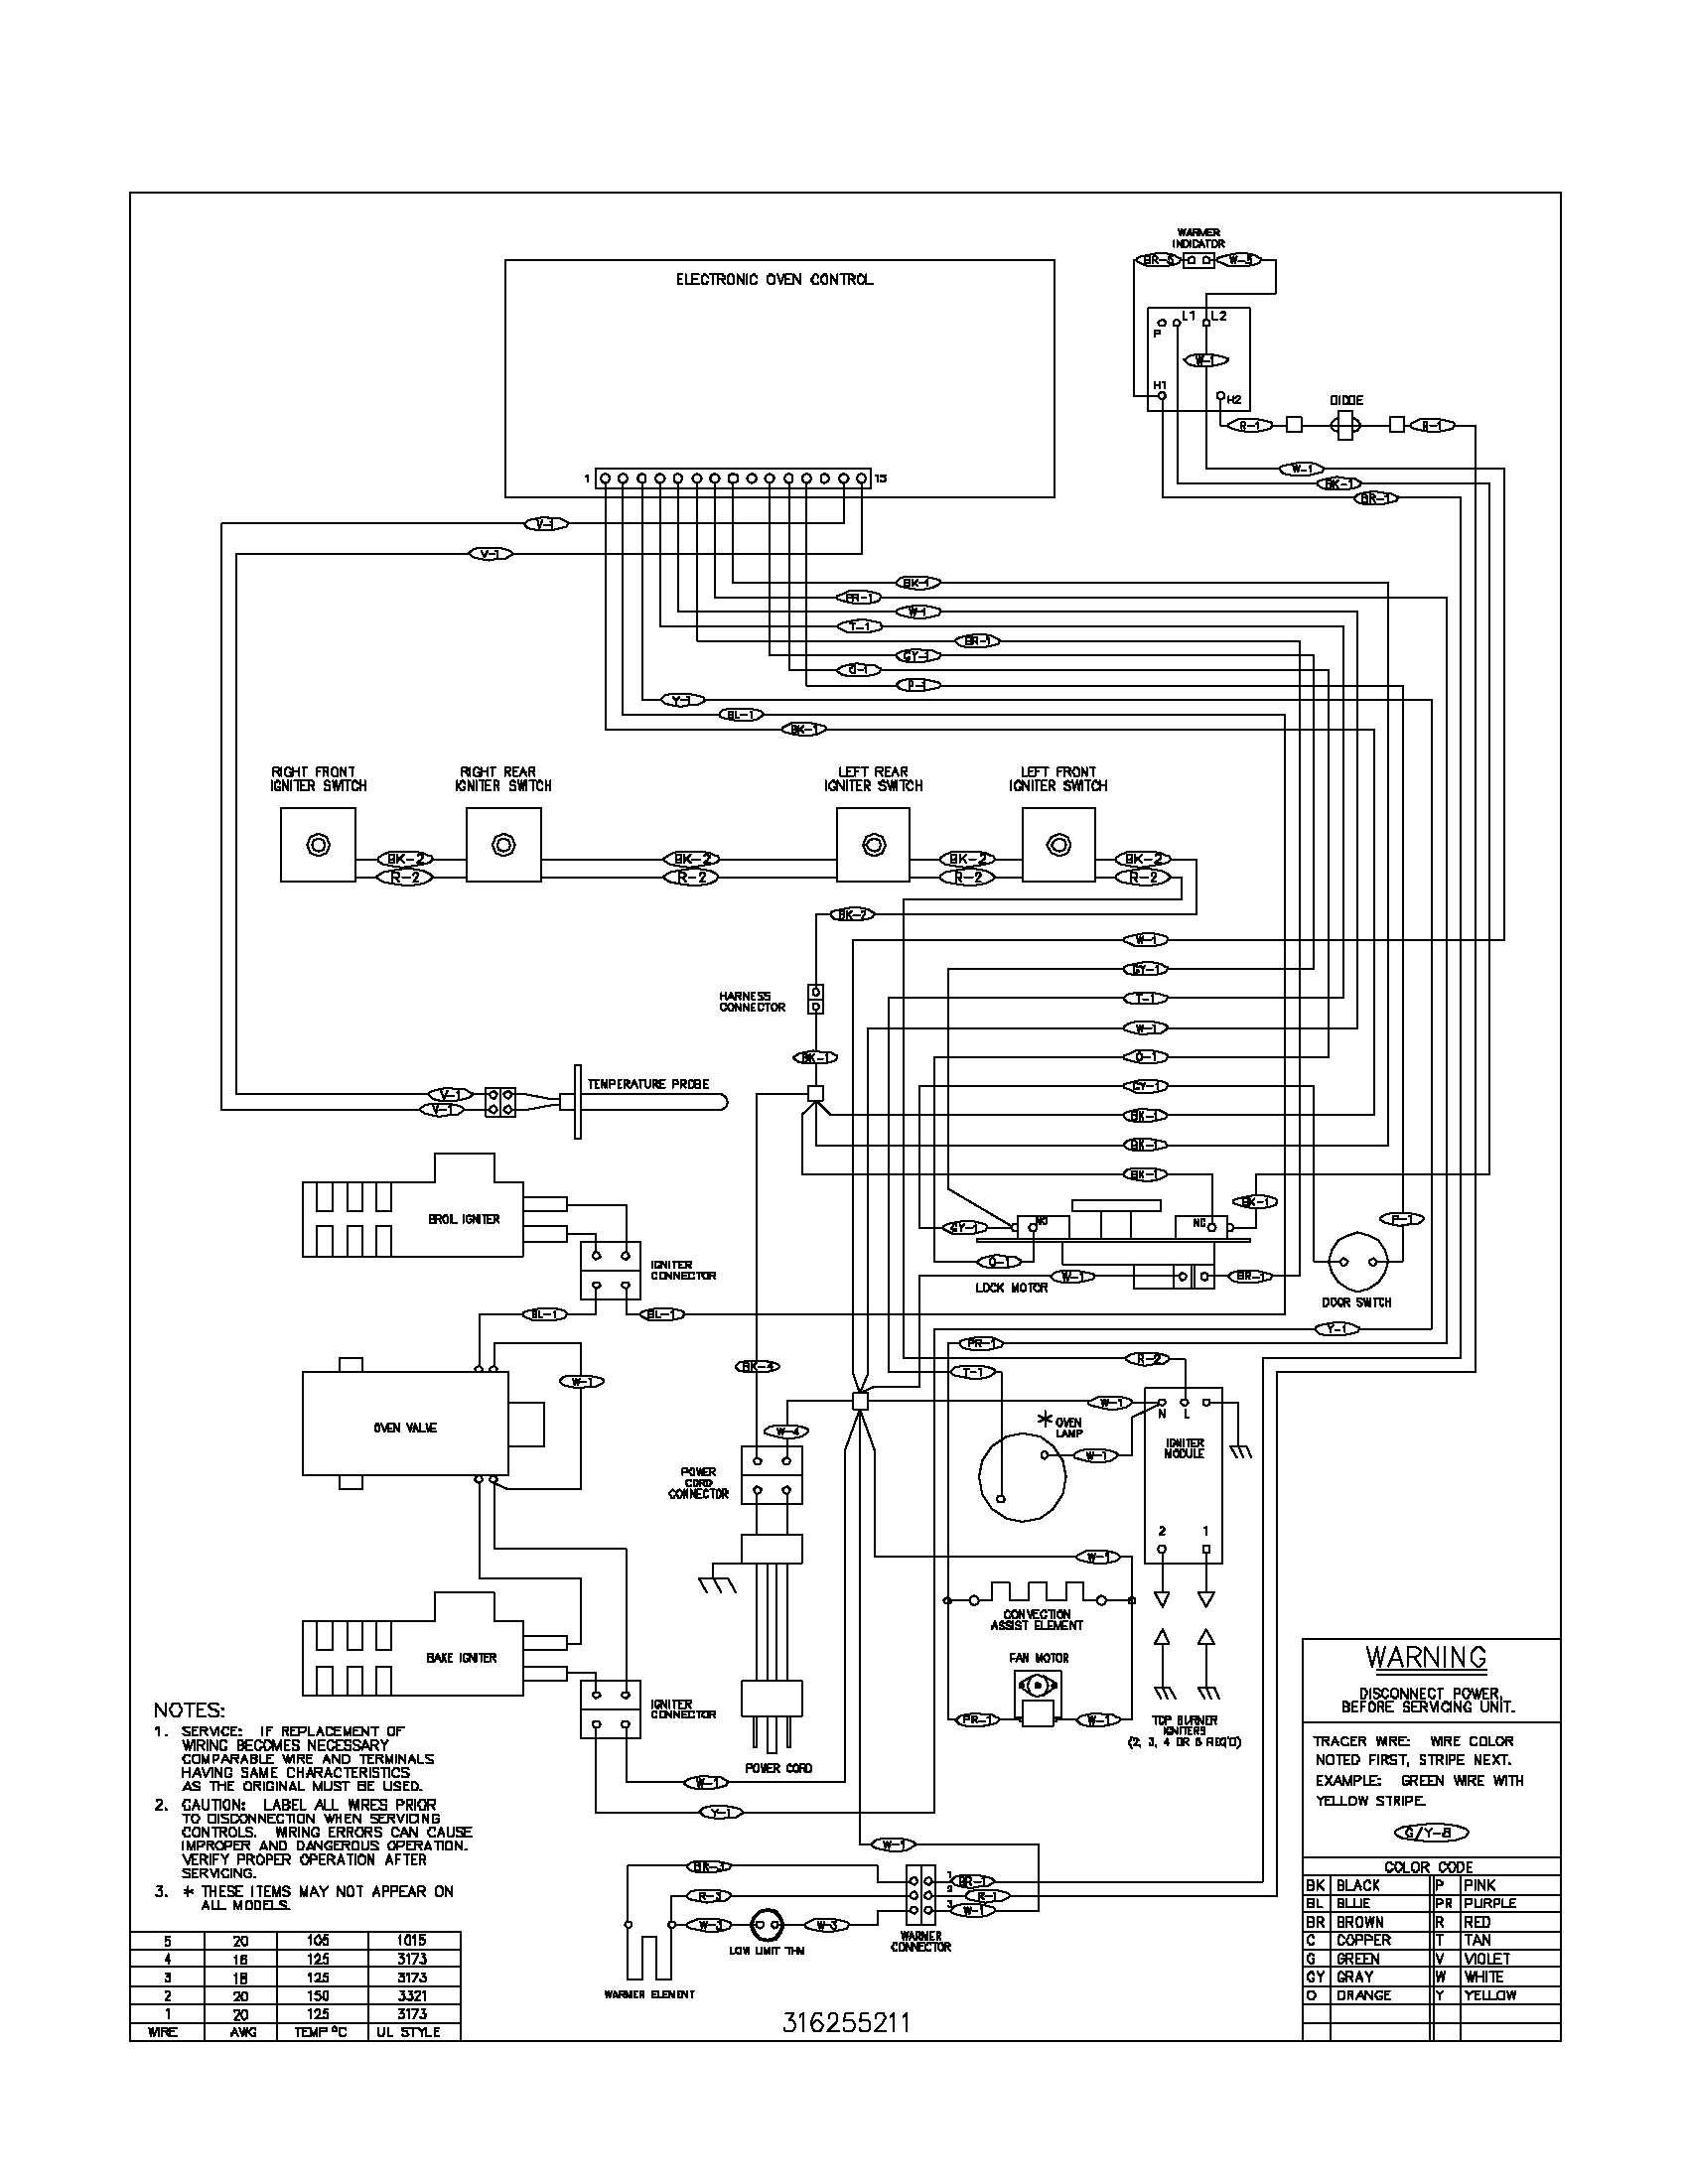 frigidaire plgf389aca gas range timer stove clocks and Harbor Breeze Fan Wiring Diagram Ceiling Fan Wiring-Diagram